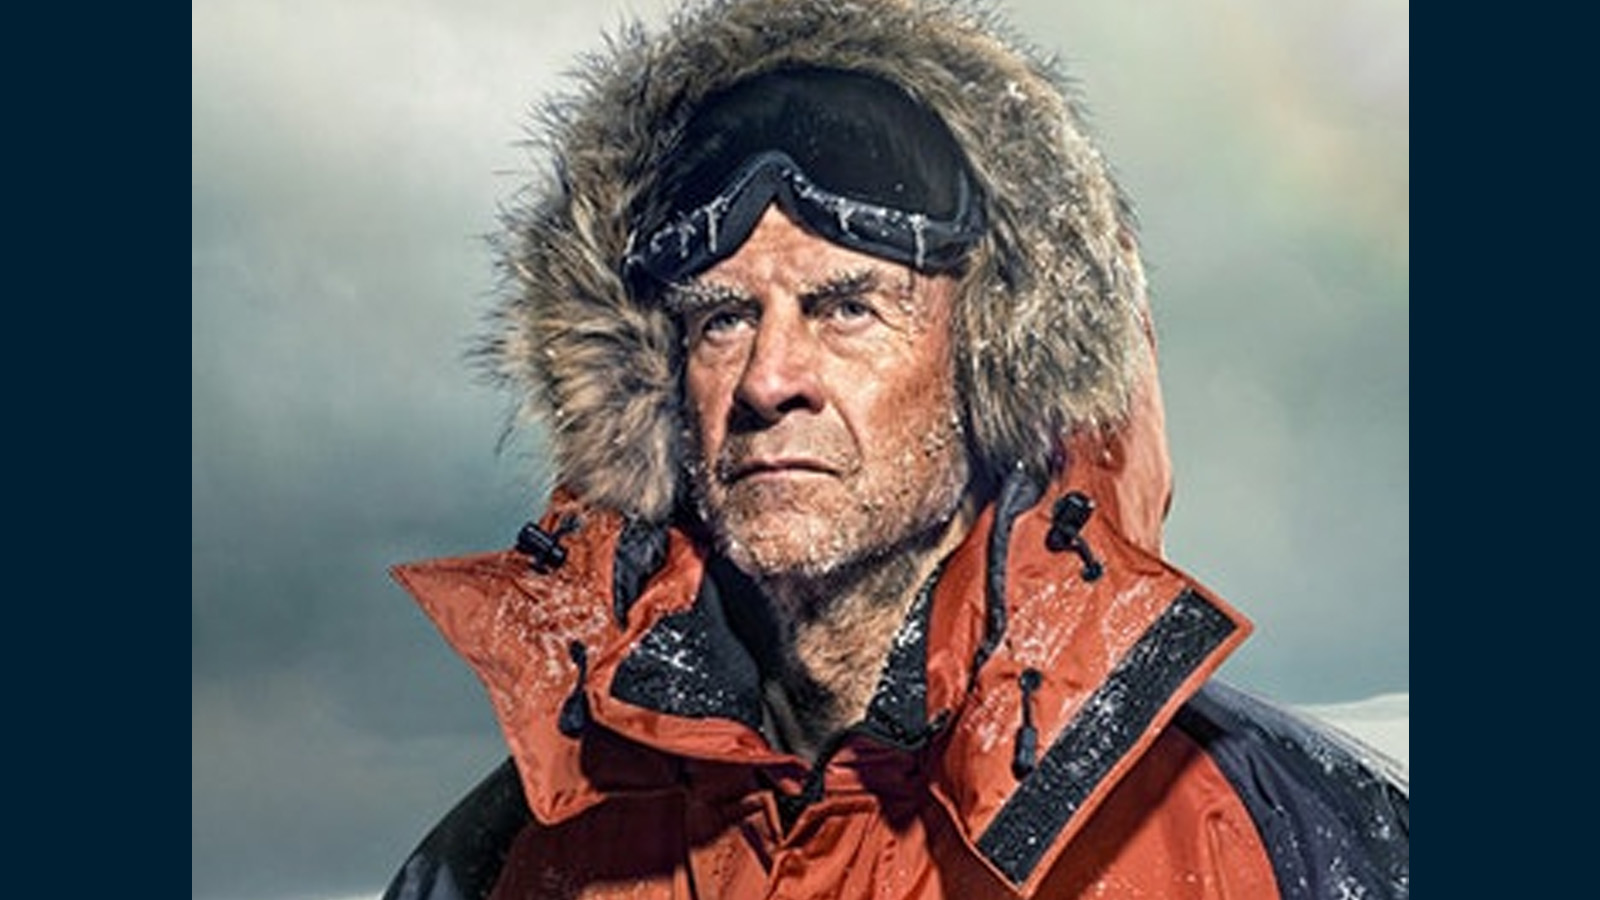 Sir Ranulph Fiennes owes life to AED